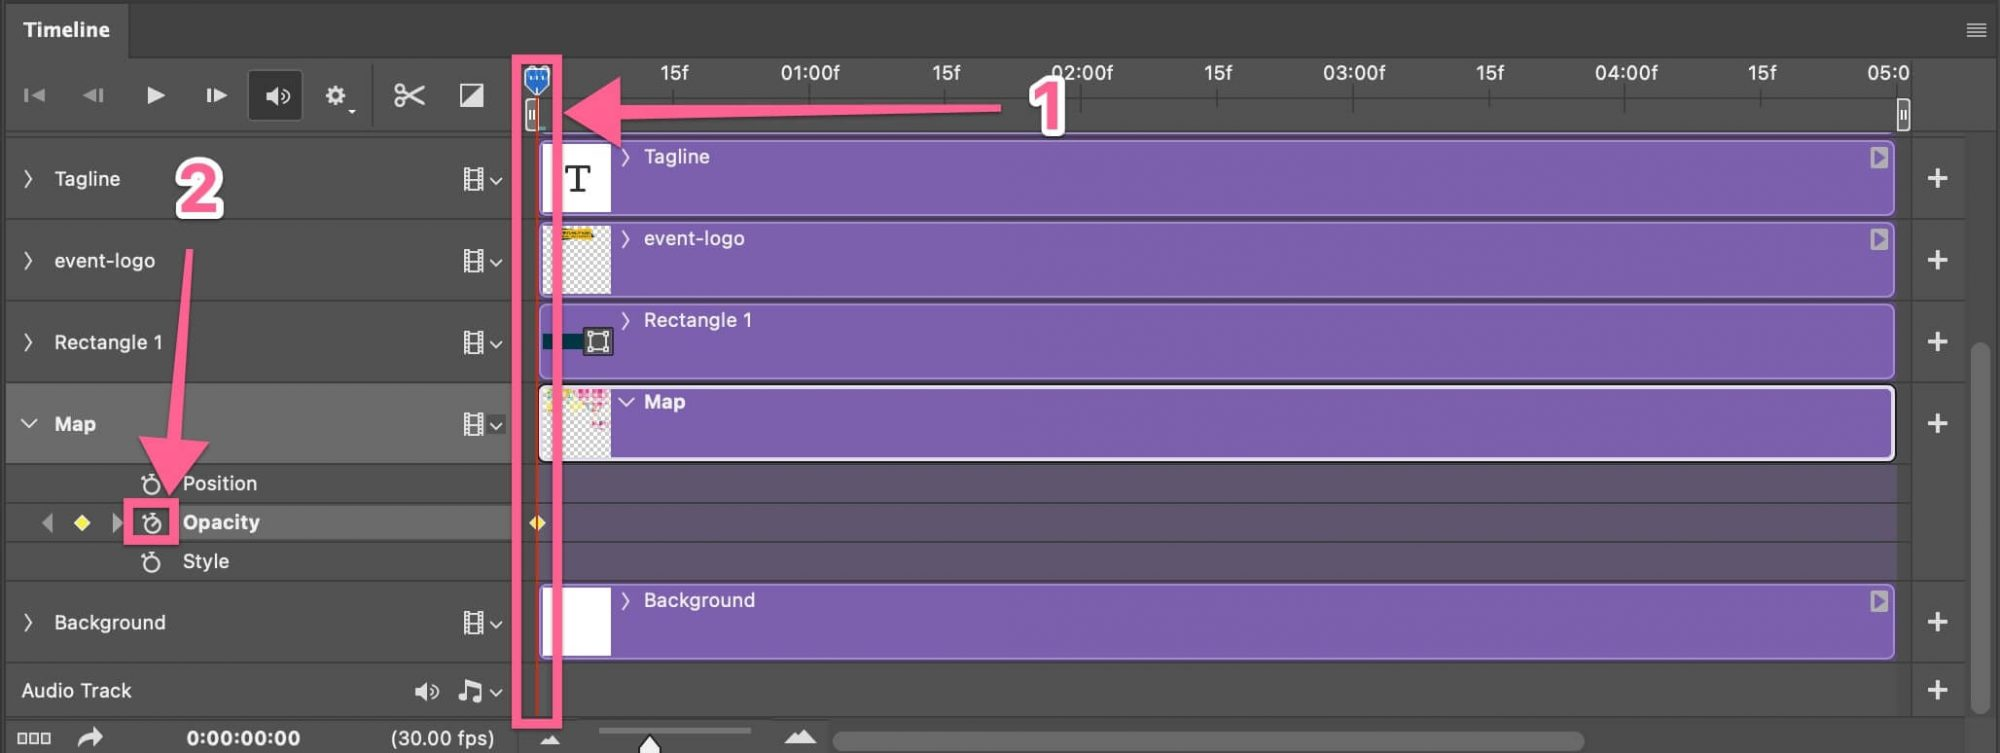 Check opacity function keyframe in timeline Photoshop